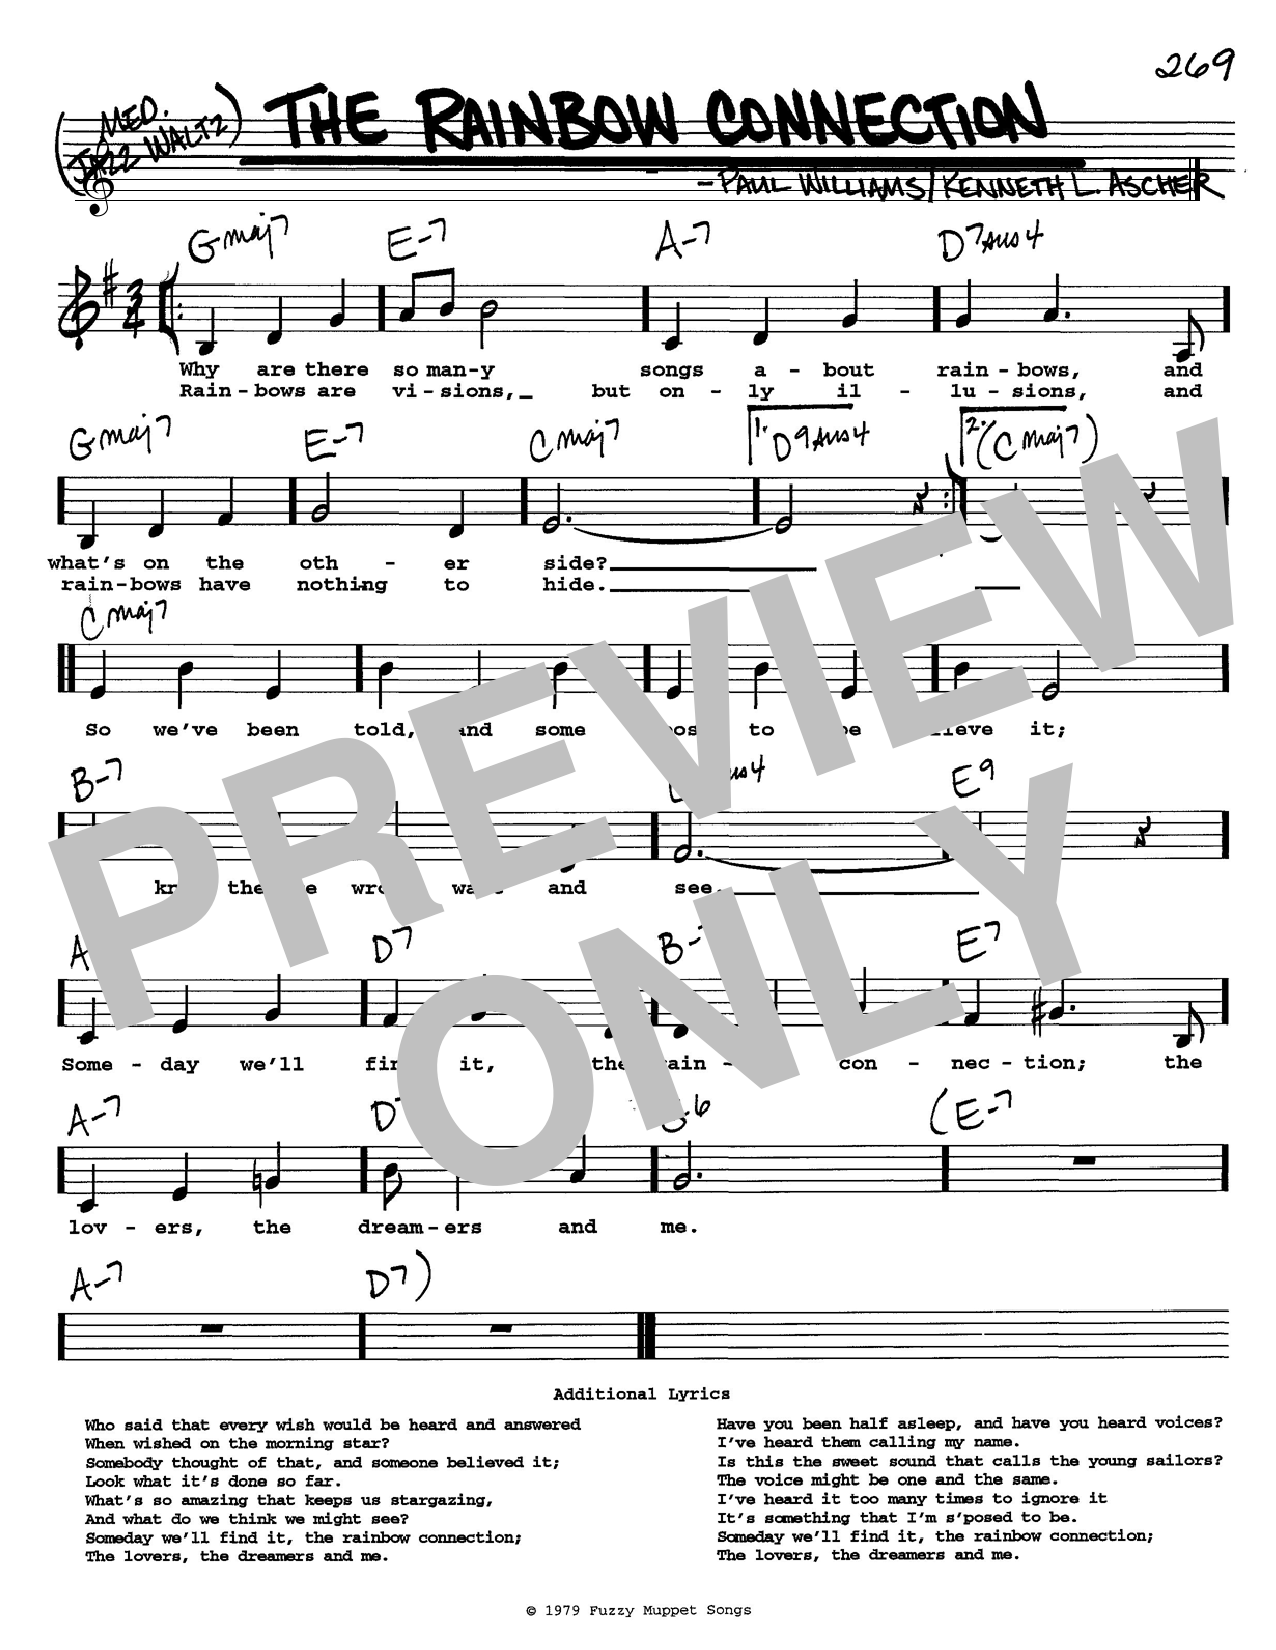 Paul Williams The Rainbow Connection sheet music notes and chords. Download Printable PDF.